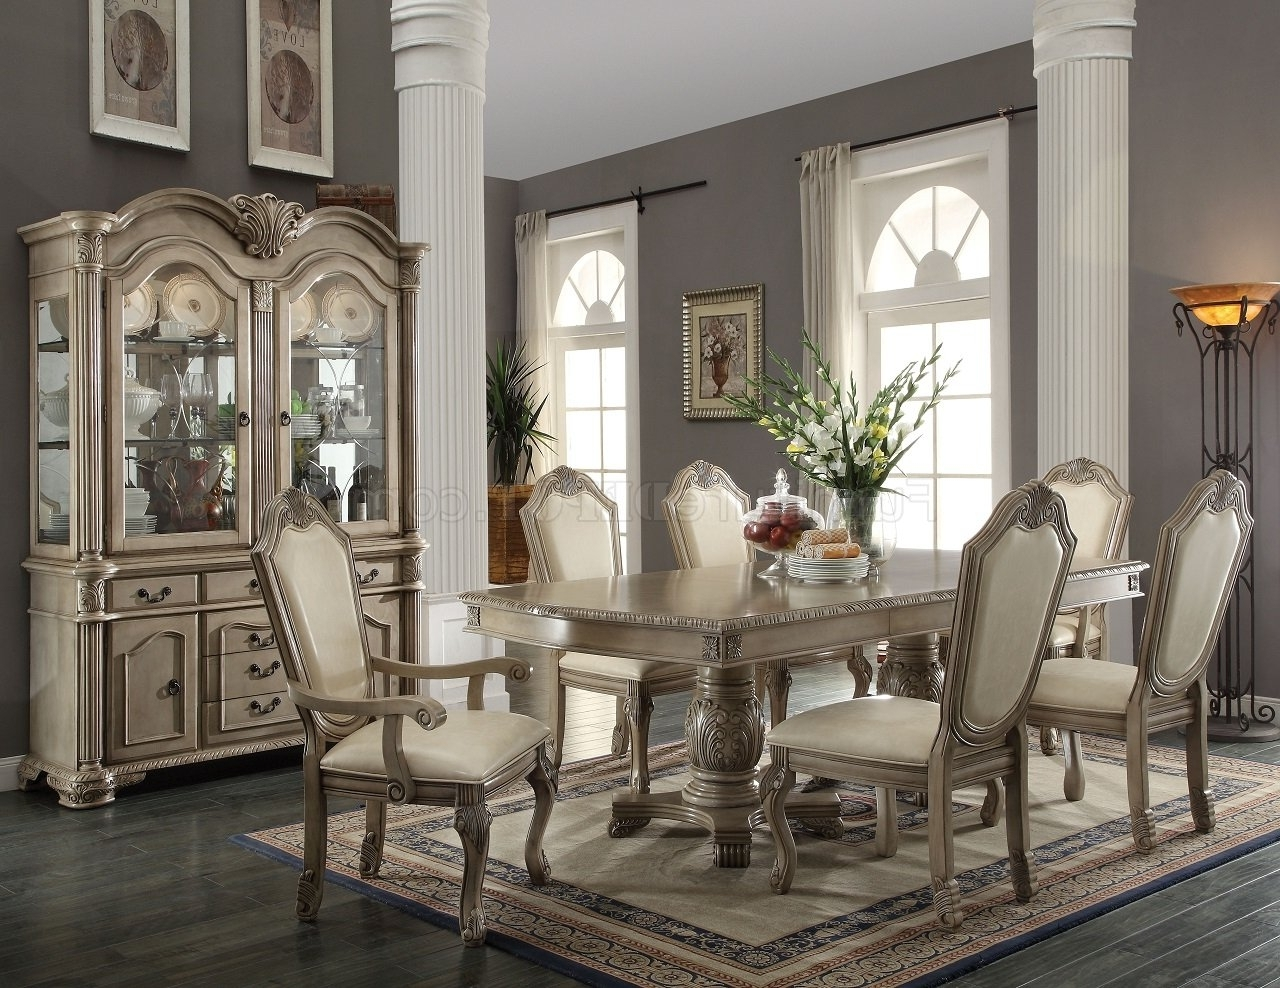 2018 Formal Dining Room Furniture: Dining Room Sets Pertaining To Cream Lacquer Dining Tables (Gallery 22 of 25)